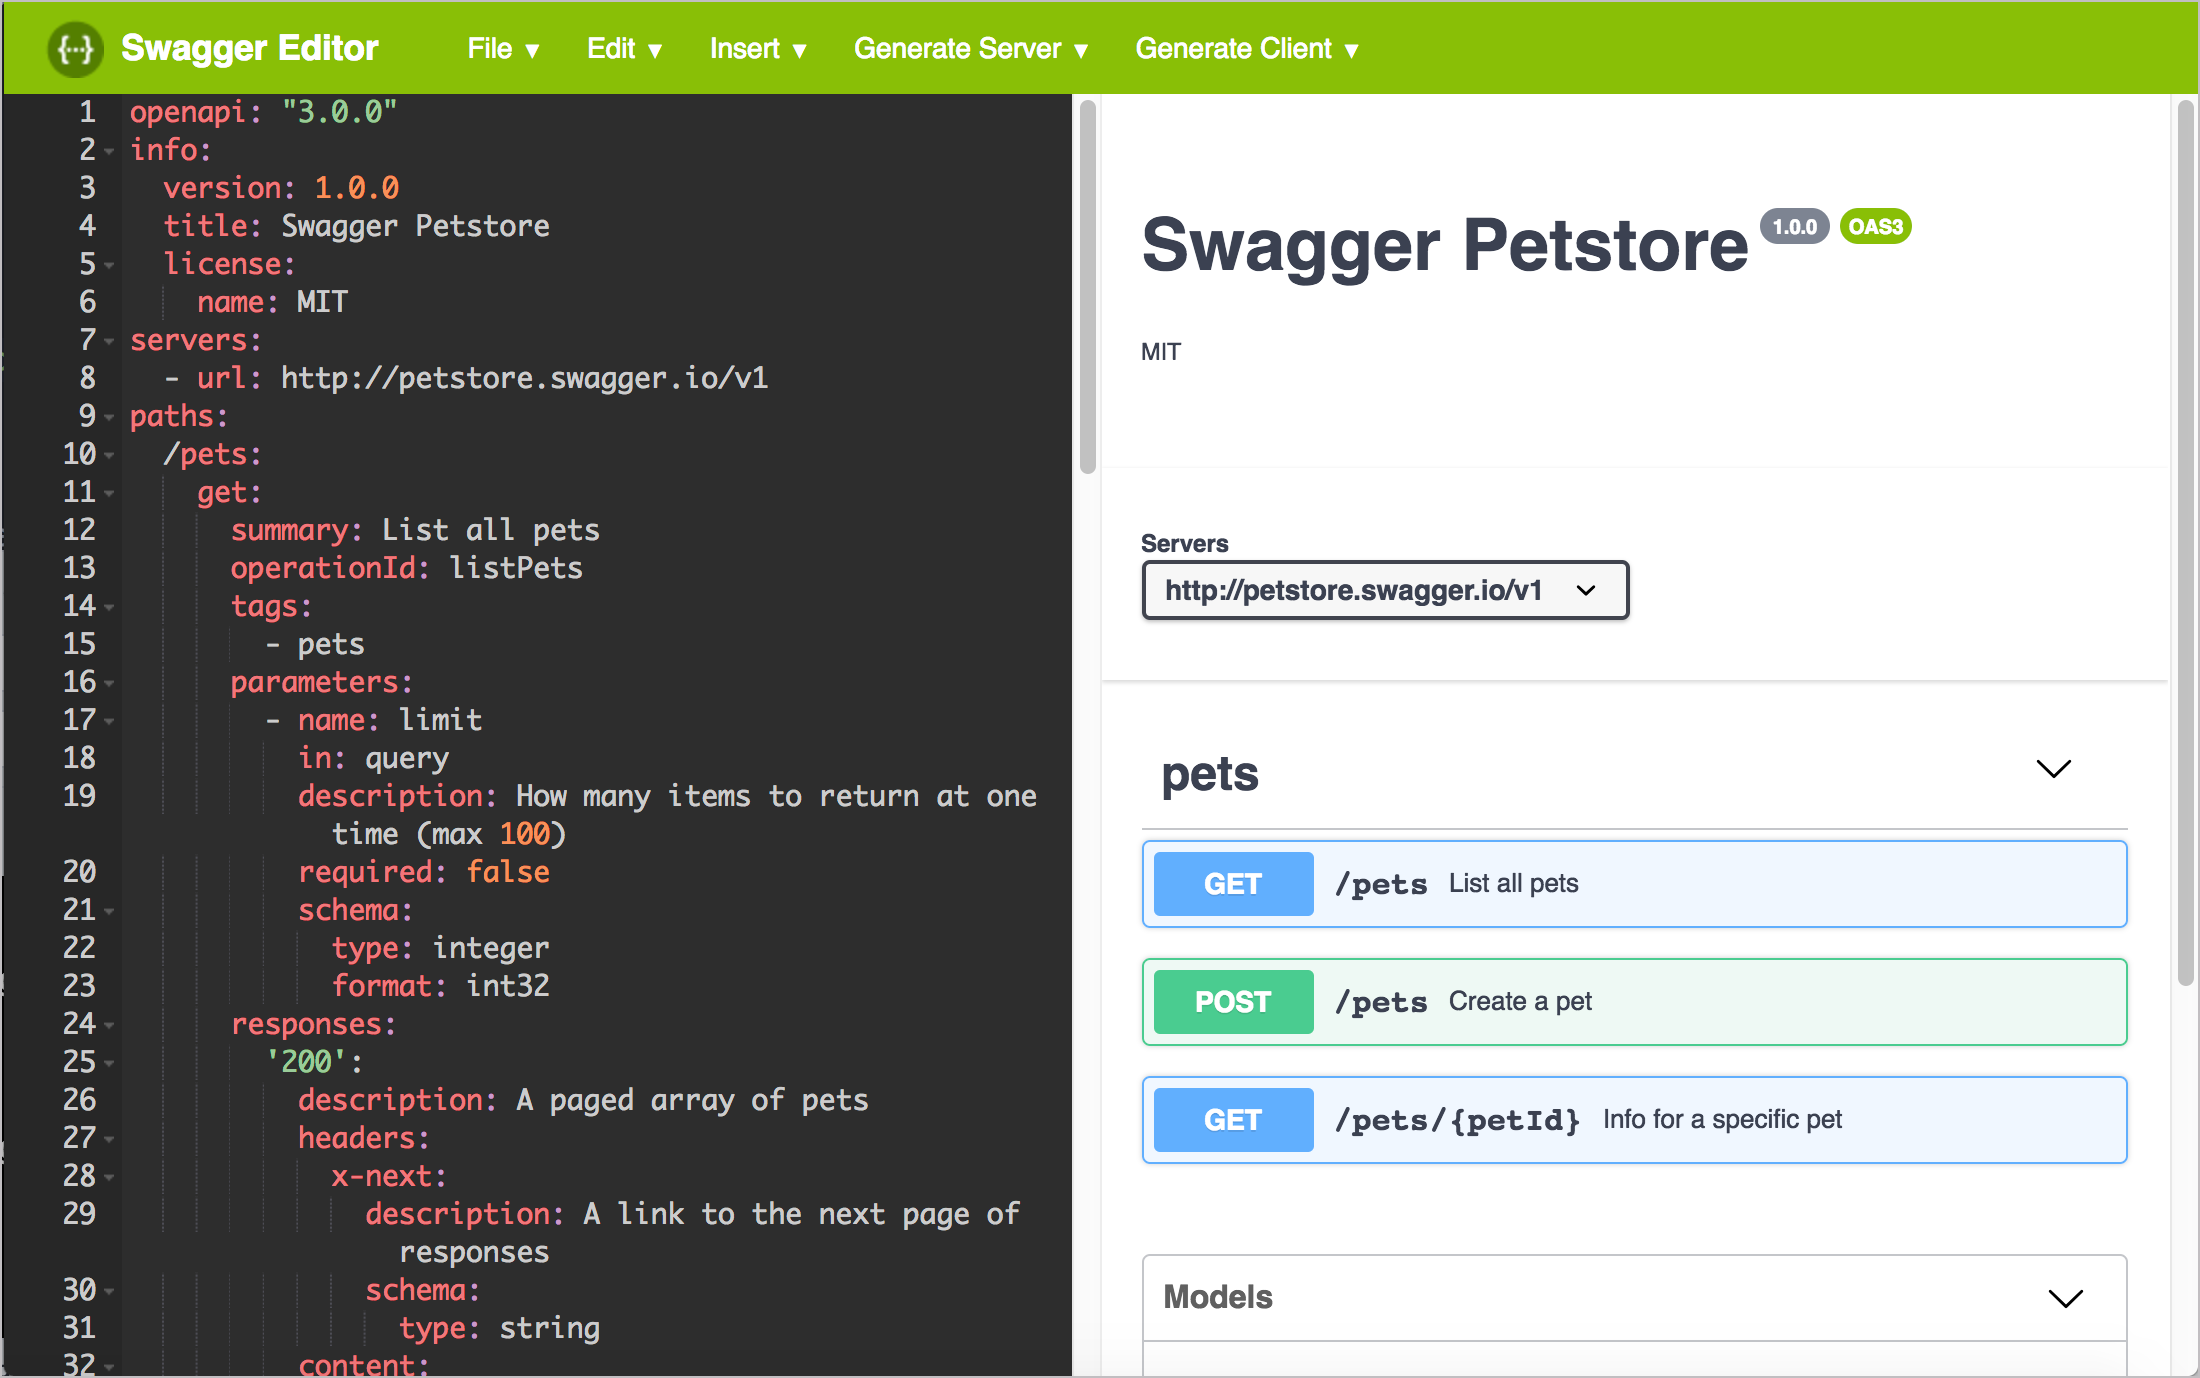 The Swagger Editor validates your specification content dynamically and shows you the display on the right